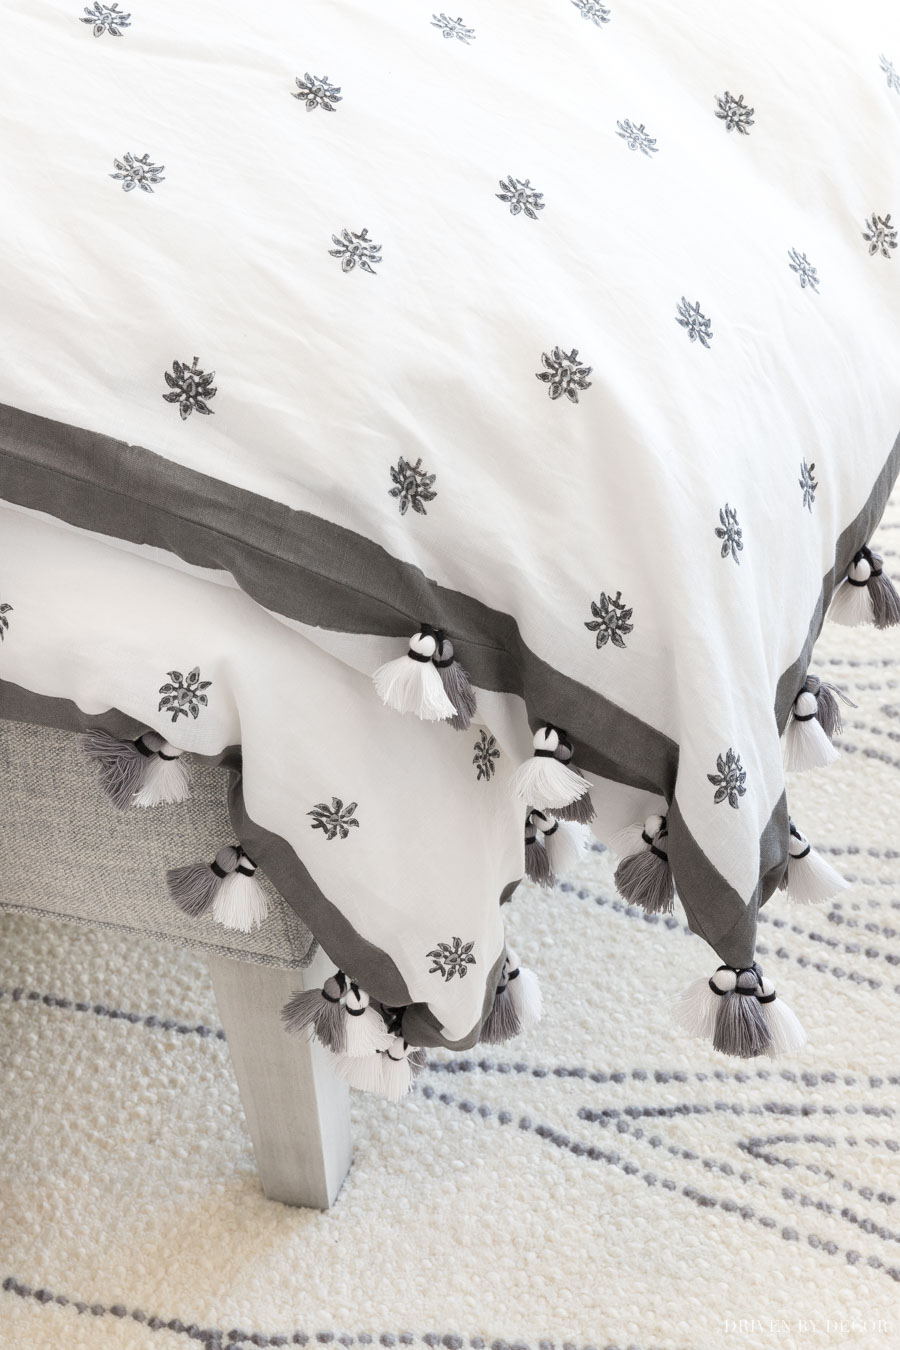 Gorgeous gray and white duvet cover with tasseled ends!